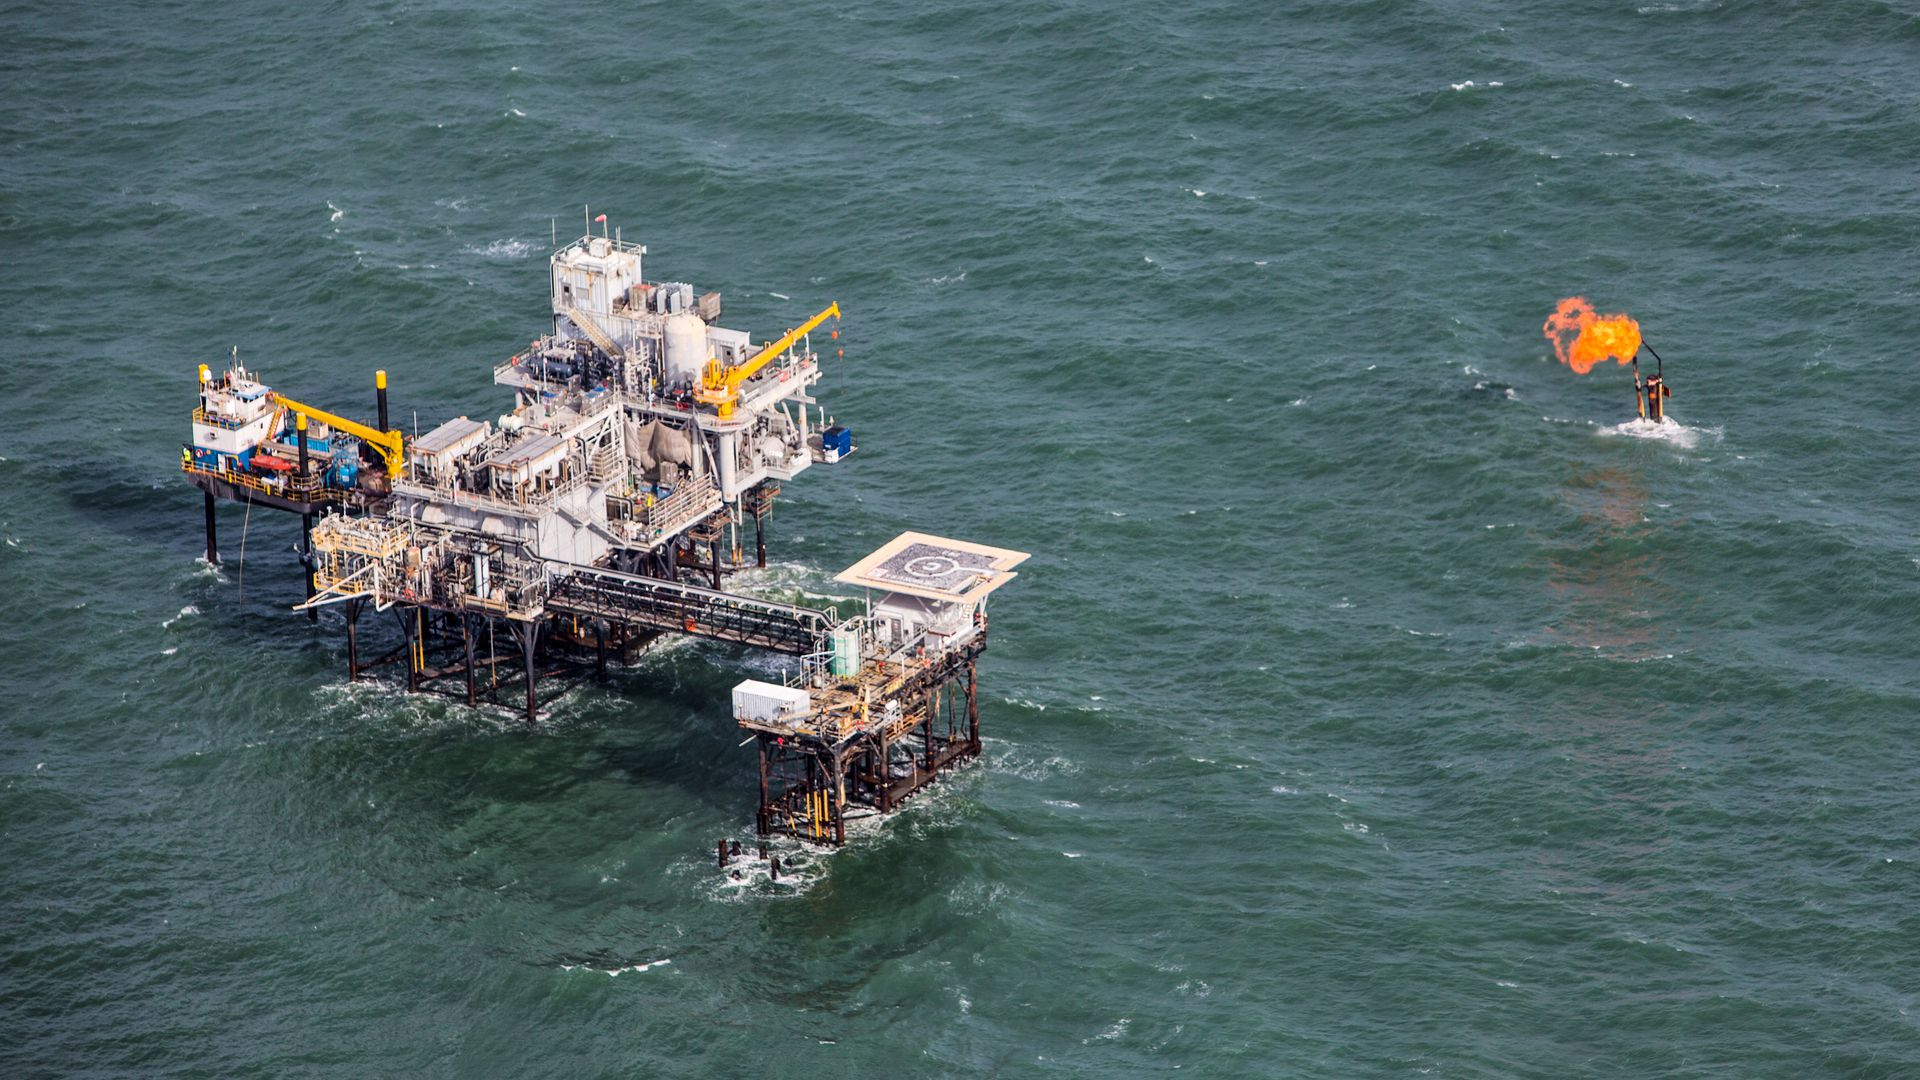 An offshore oil platform